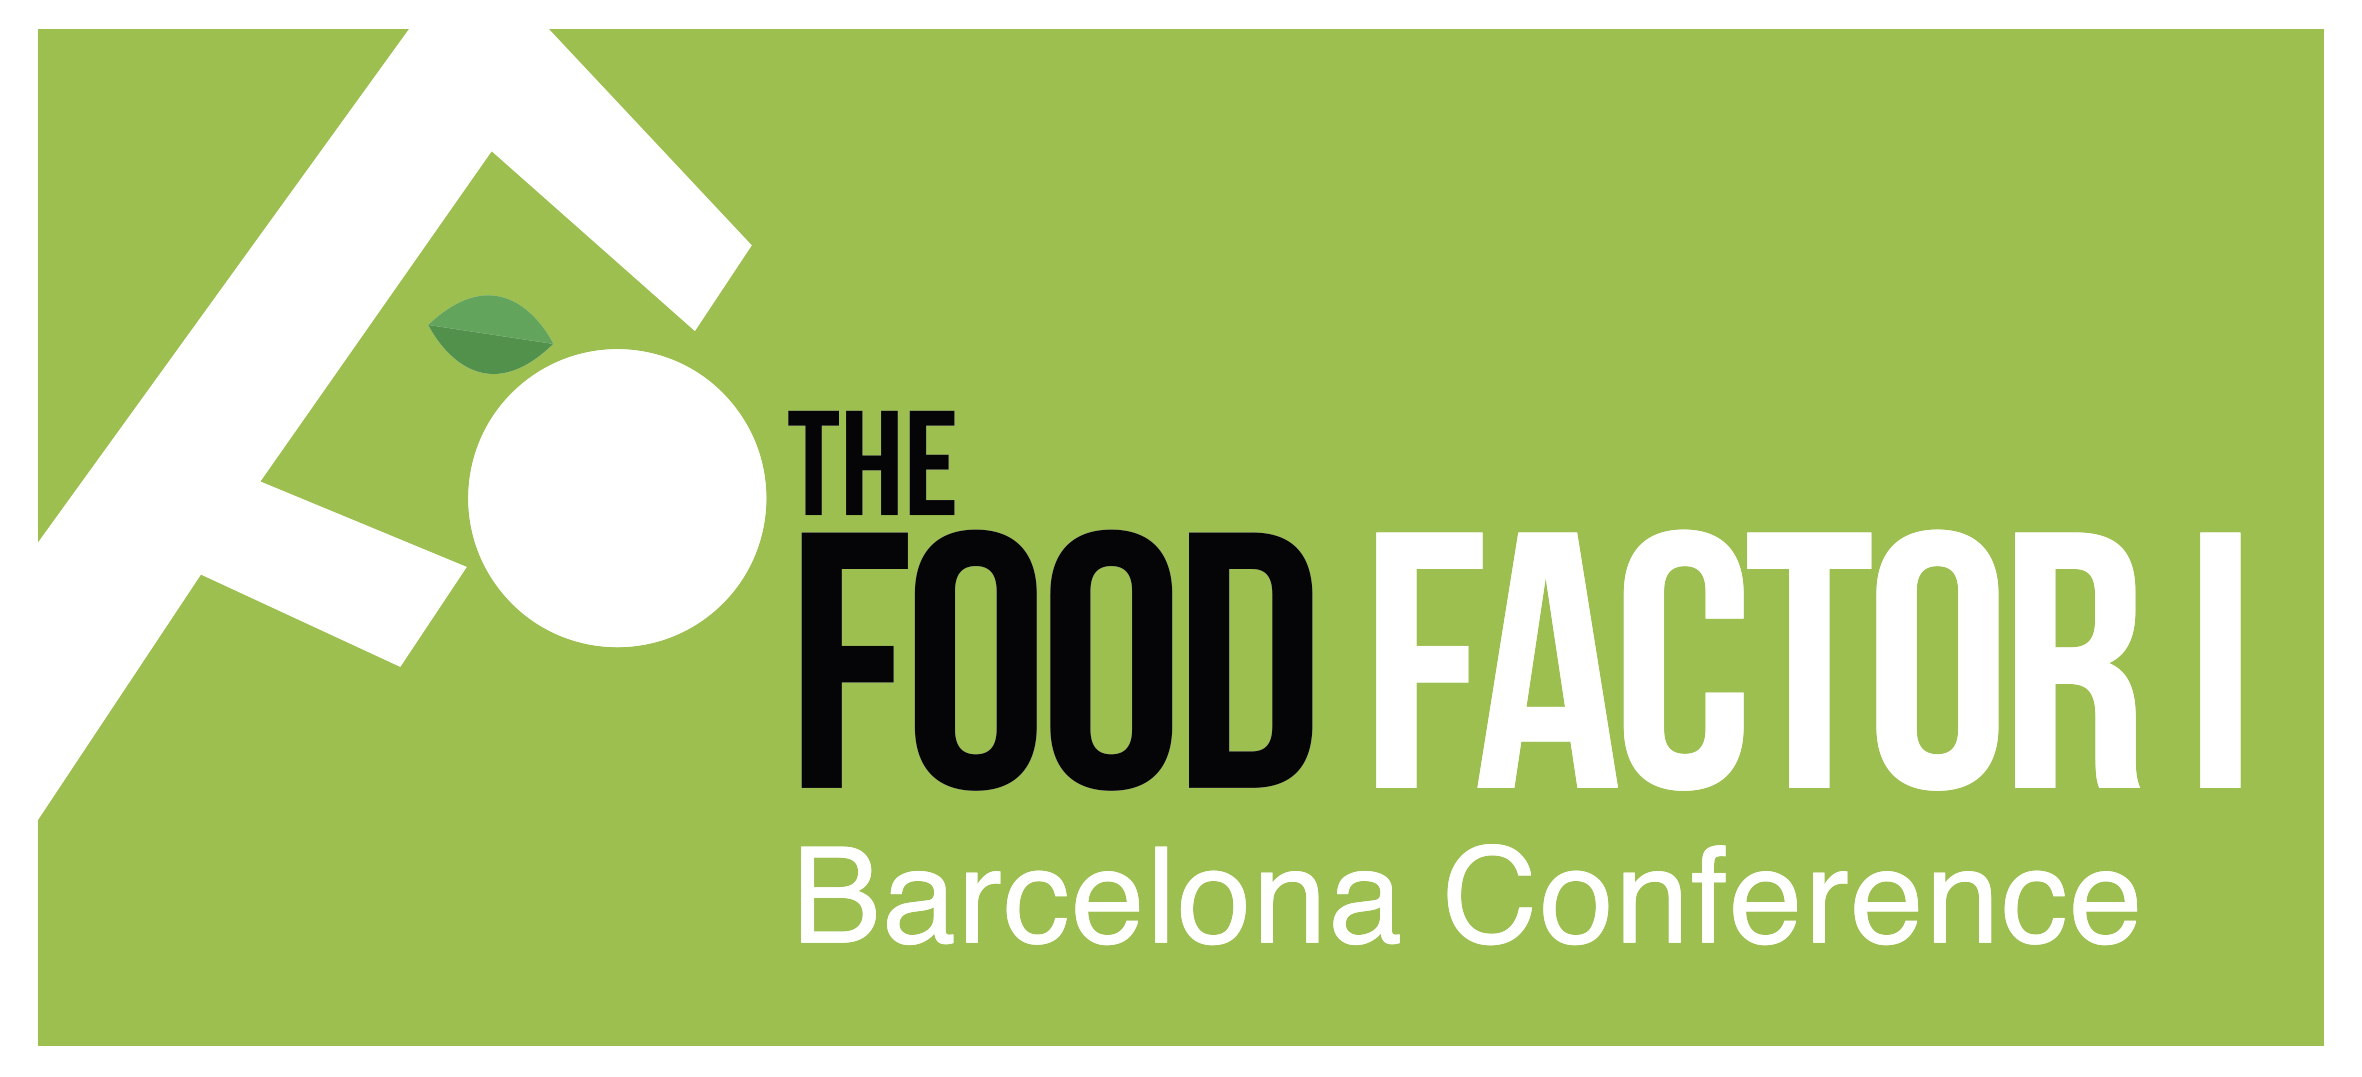 The Food Factor Barcelona Conference